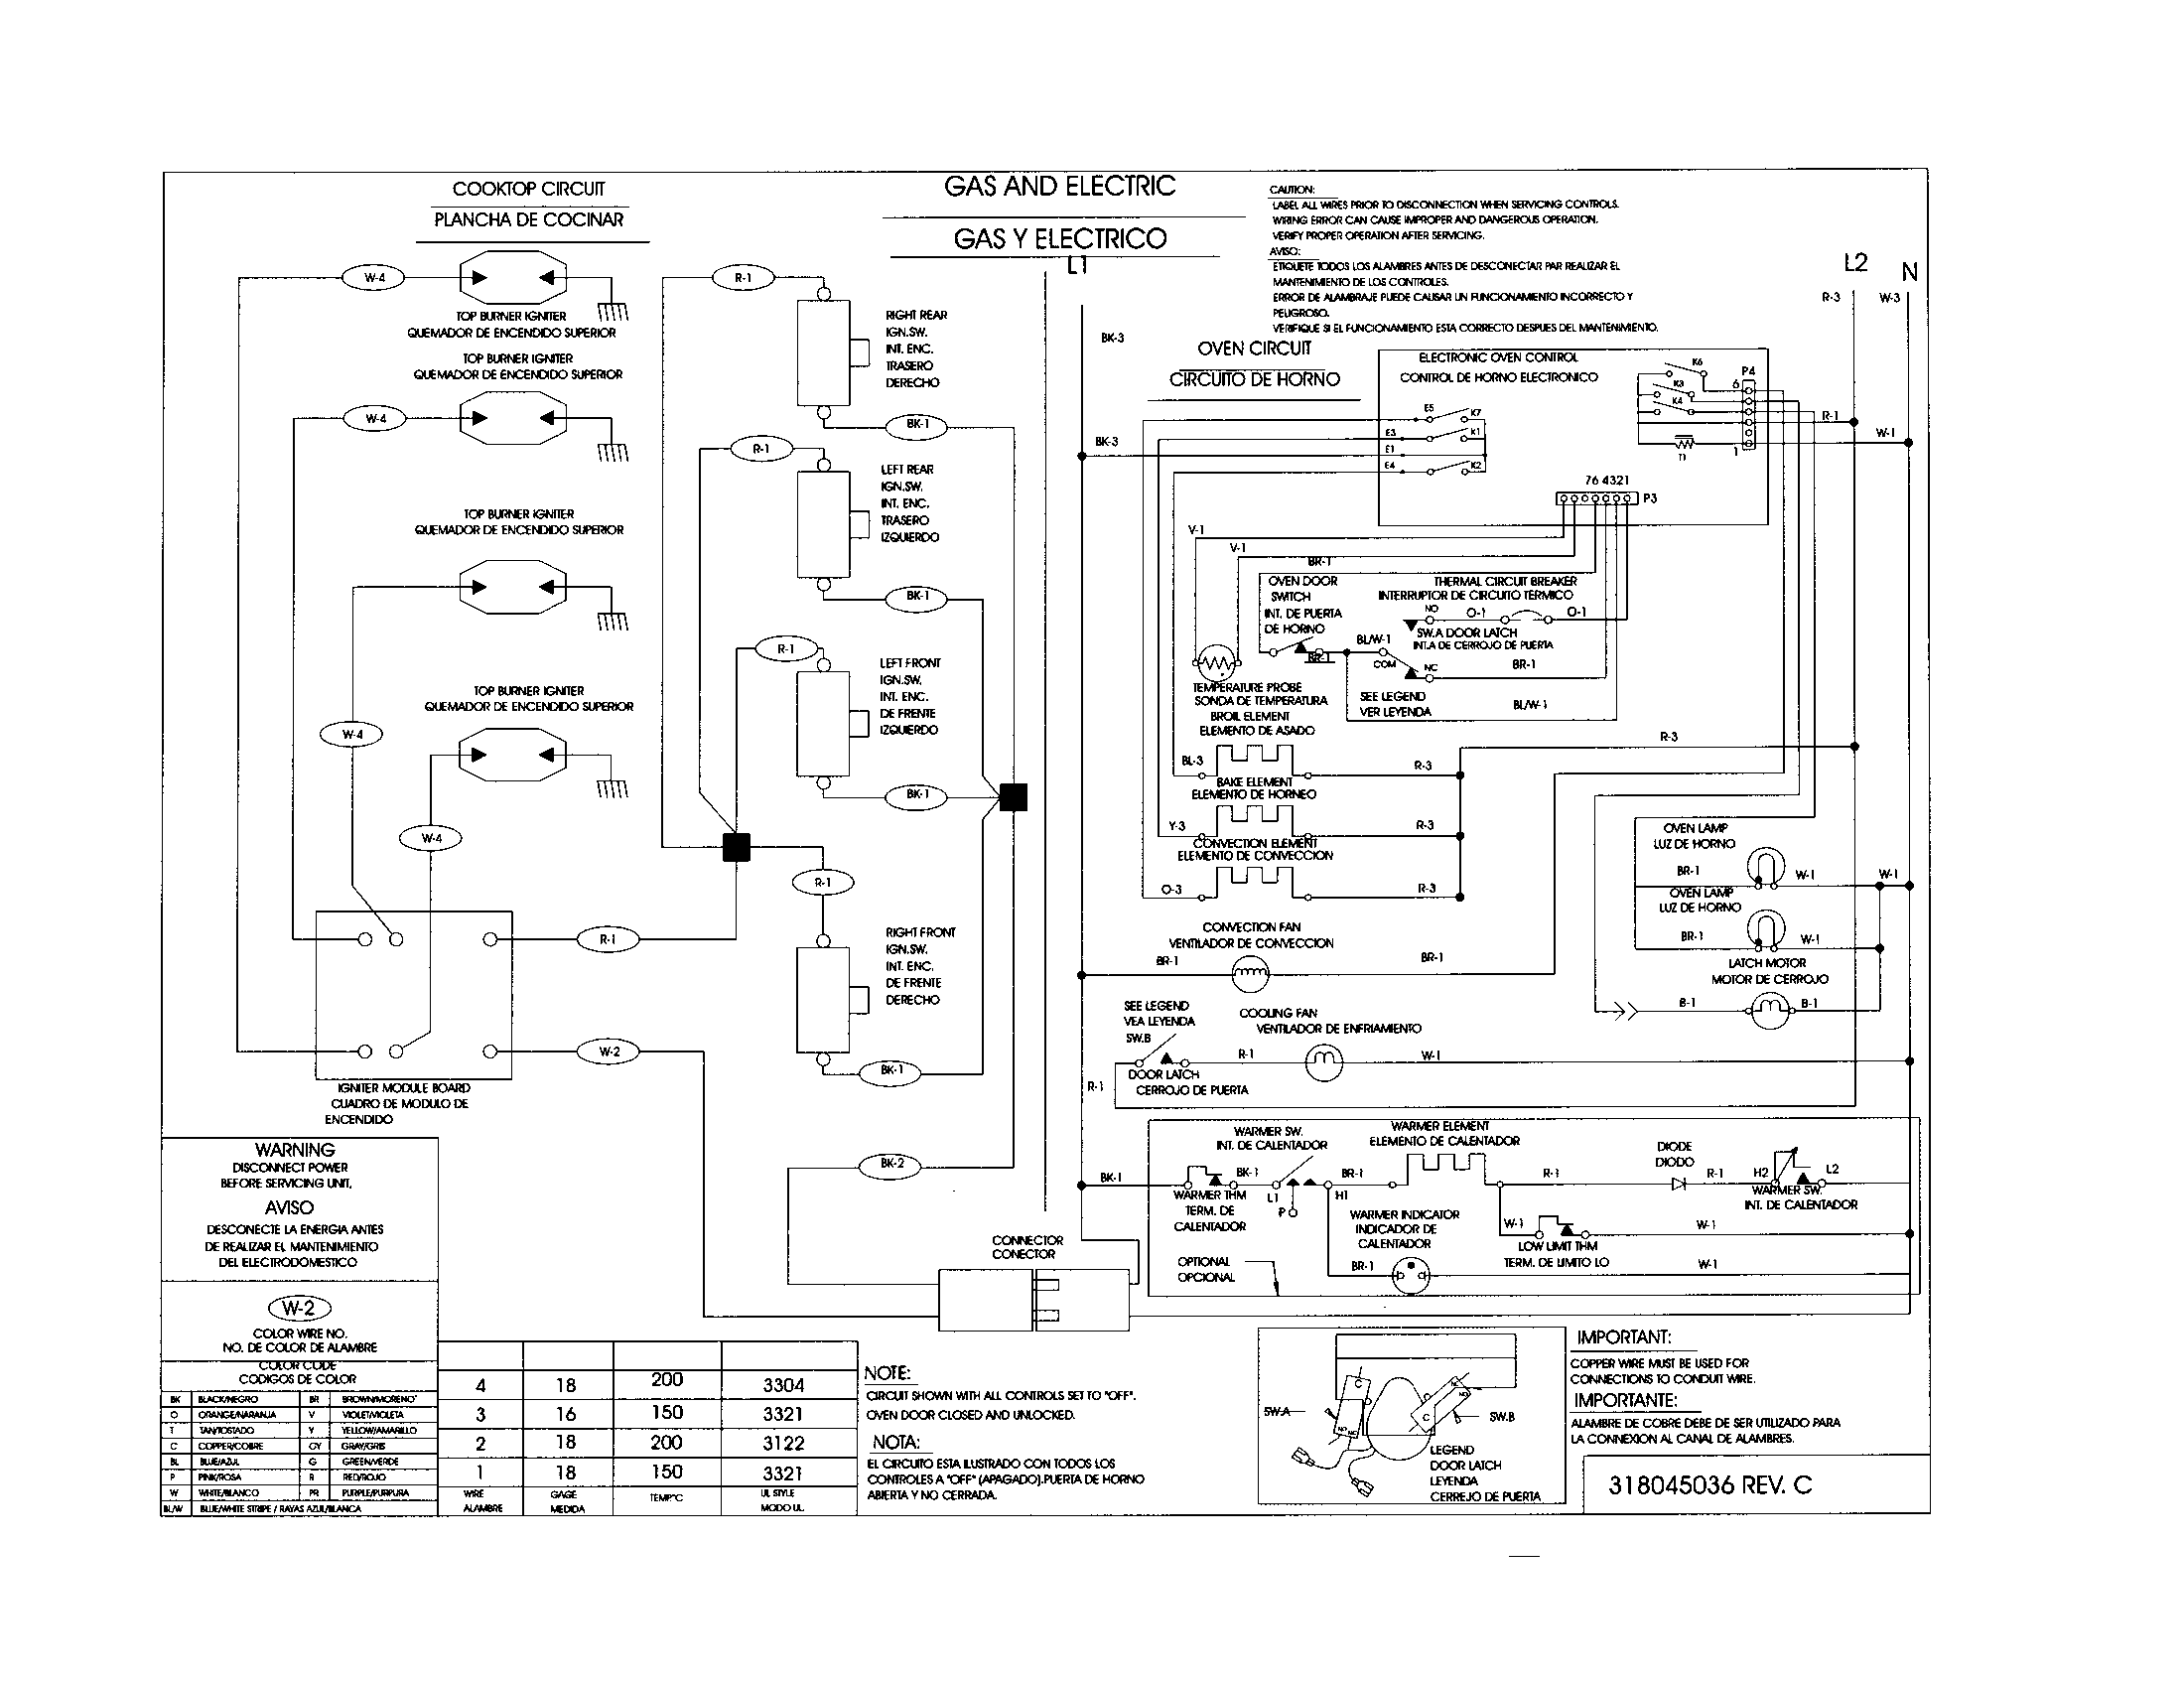 Kenmore Elite Wiring Diagram - Wiring Diagram List on ceiling fan wiring schematic, ge washer wiring schematic, whirlpool wiring schematic, refrigerator wiring schematic, maytag wiring schematic, heat pump wiring schematic, ge oven wiring schematic, ice maker wiring schematic, electric dryer wiring schematic,